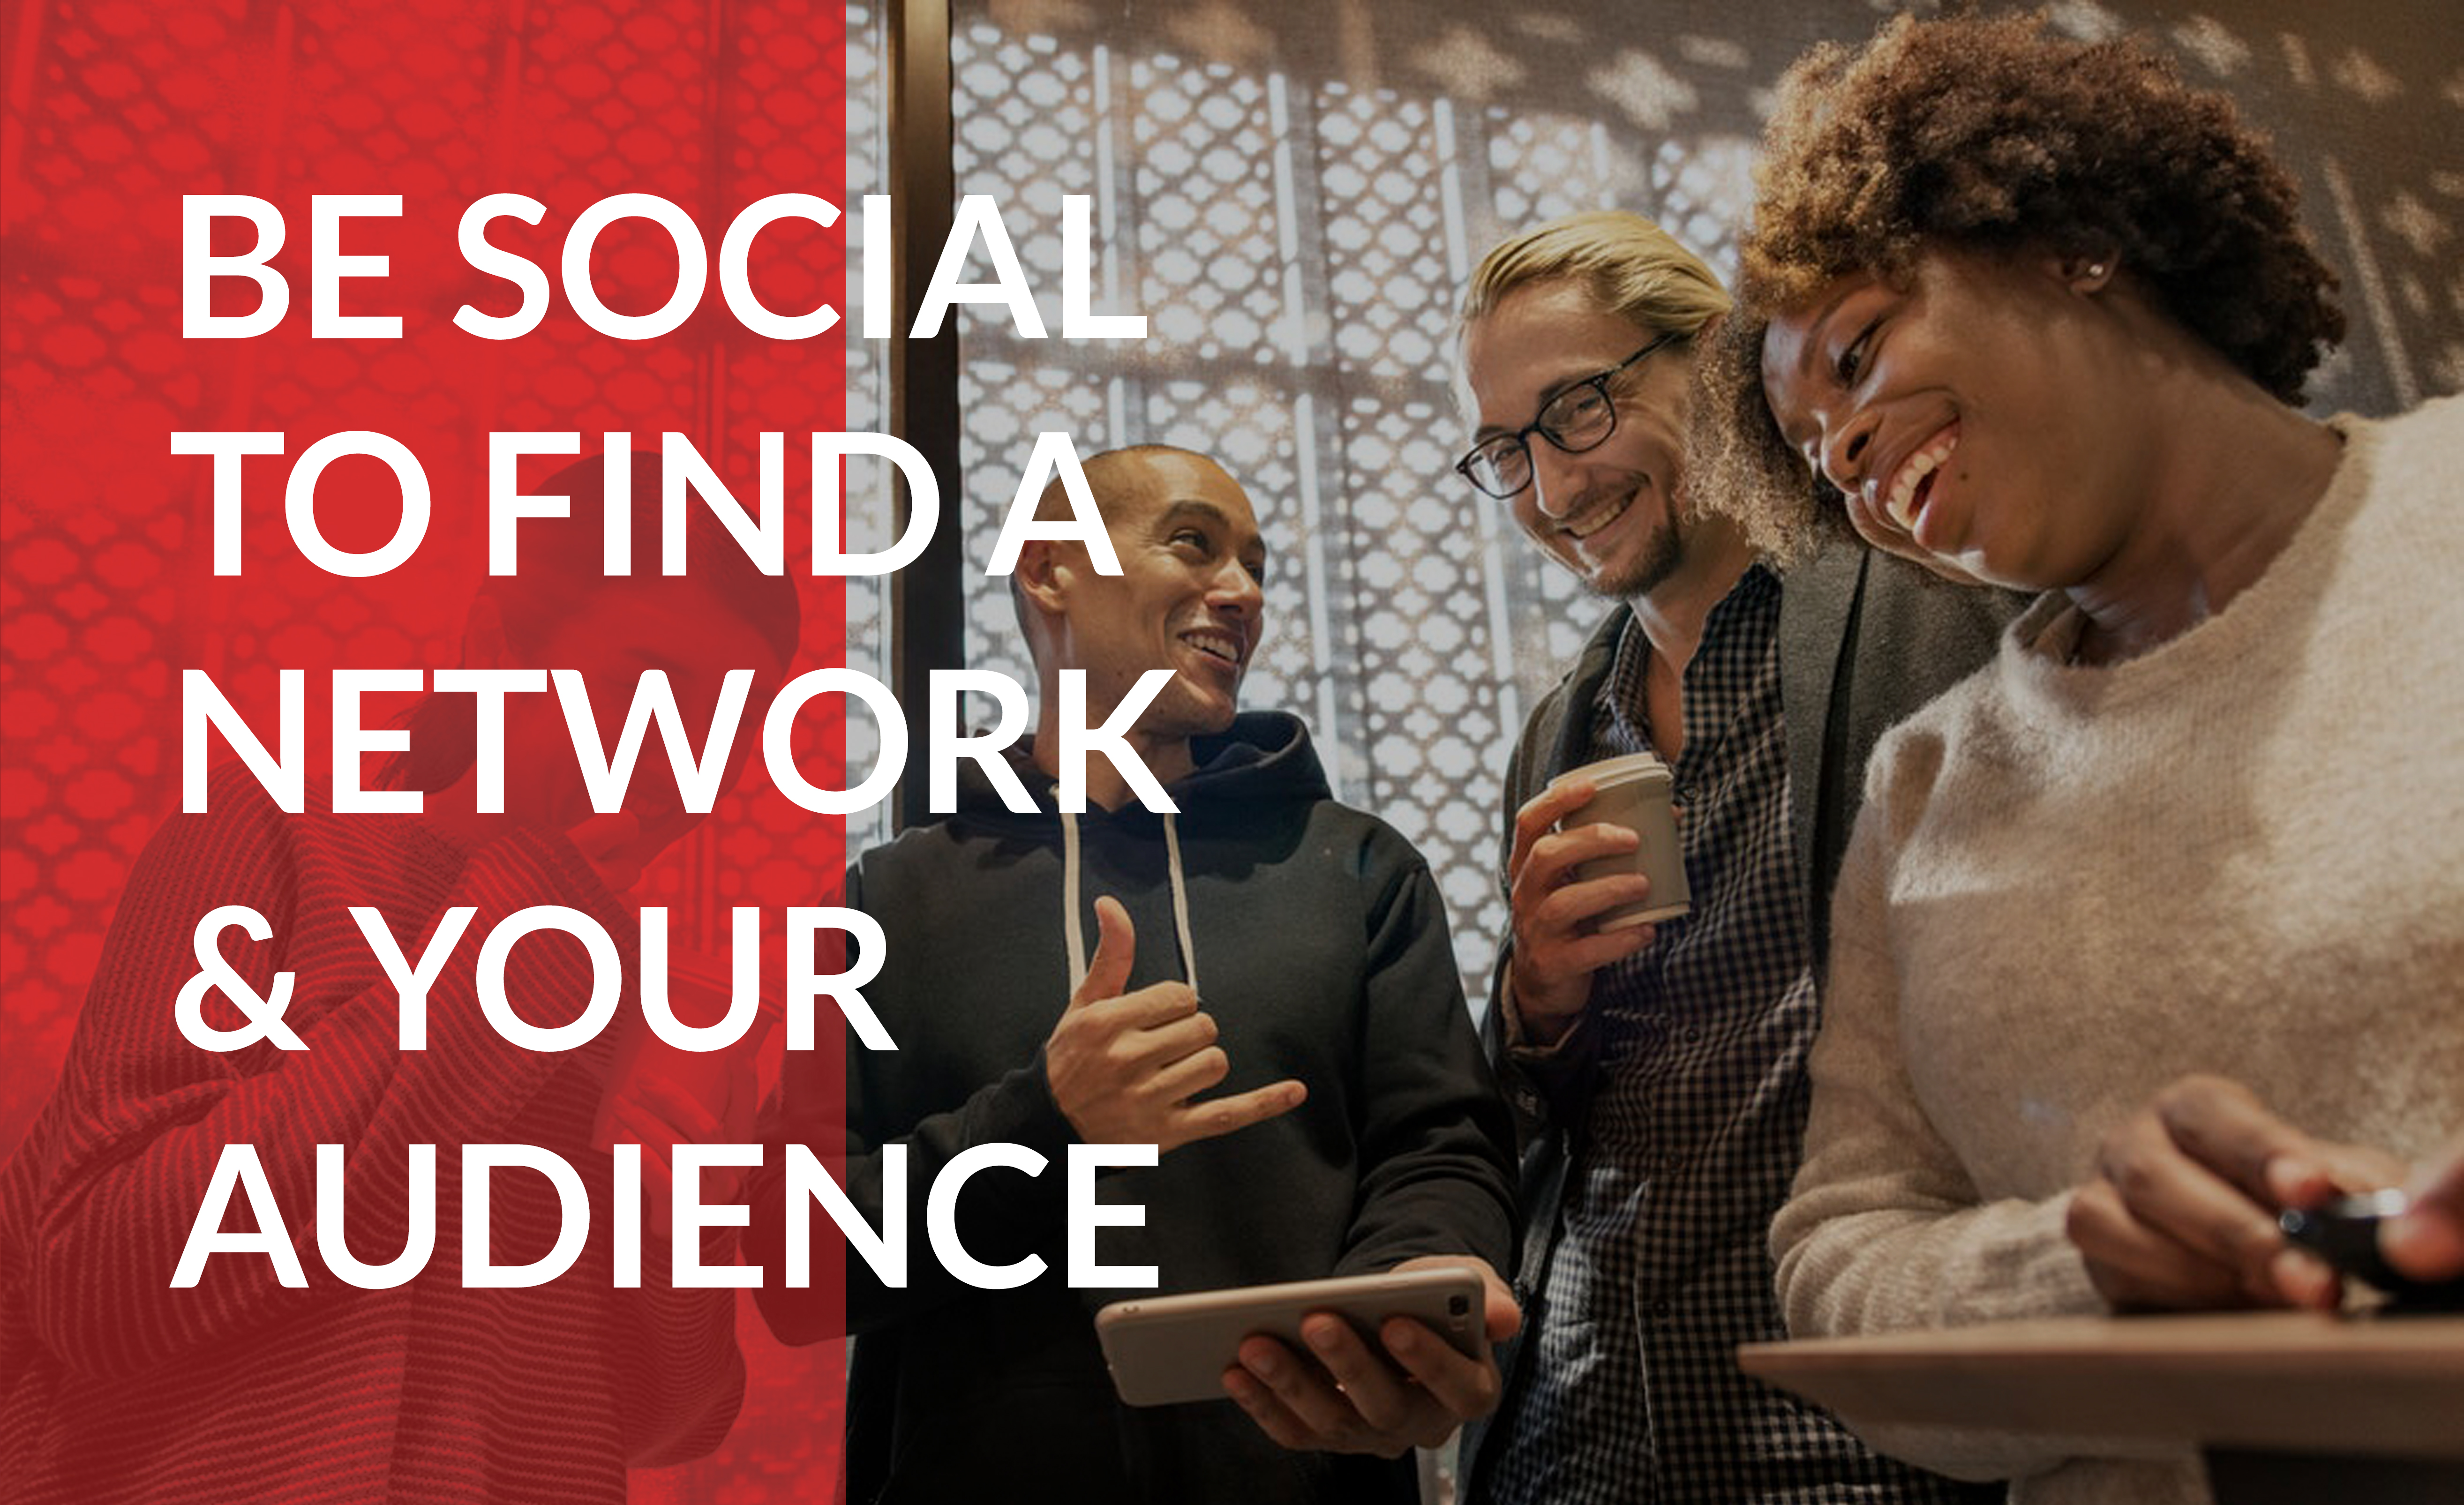 Be social online and offline to build a network of partners and customers.